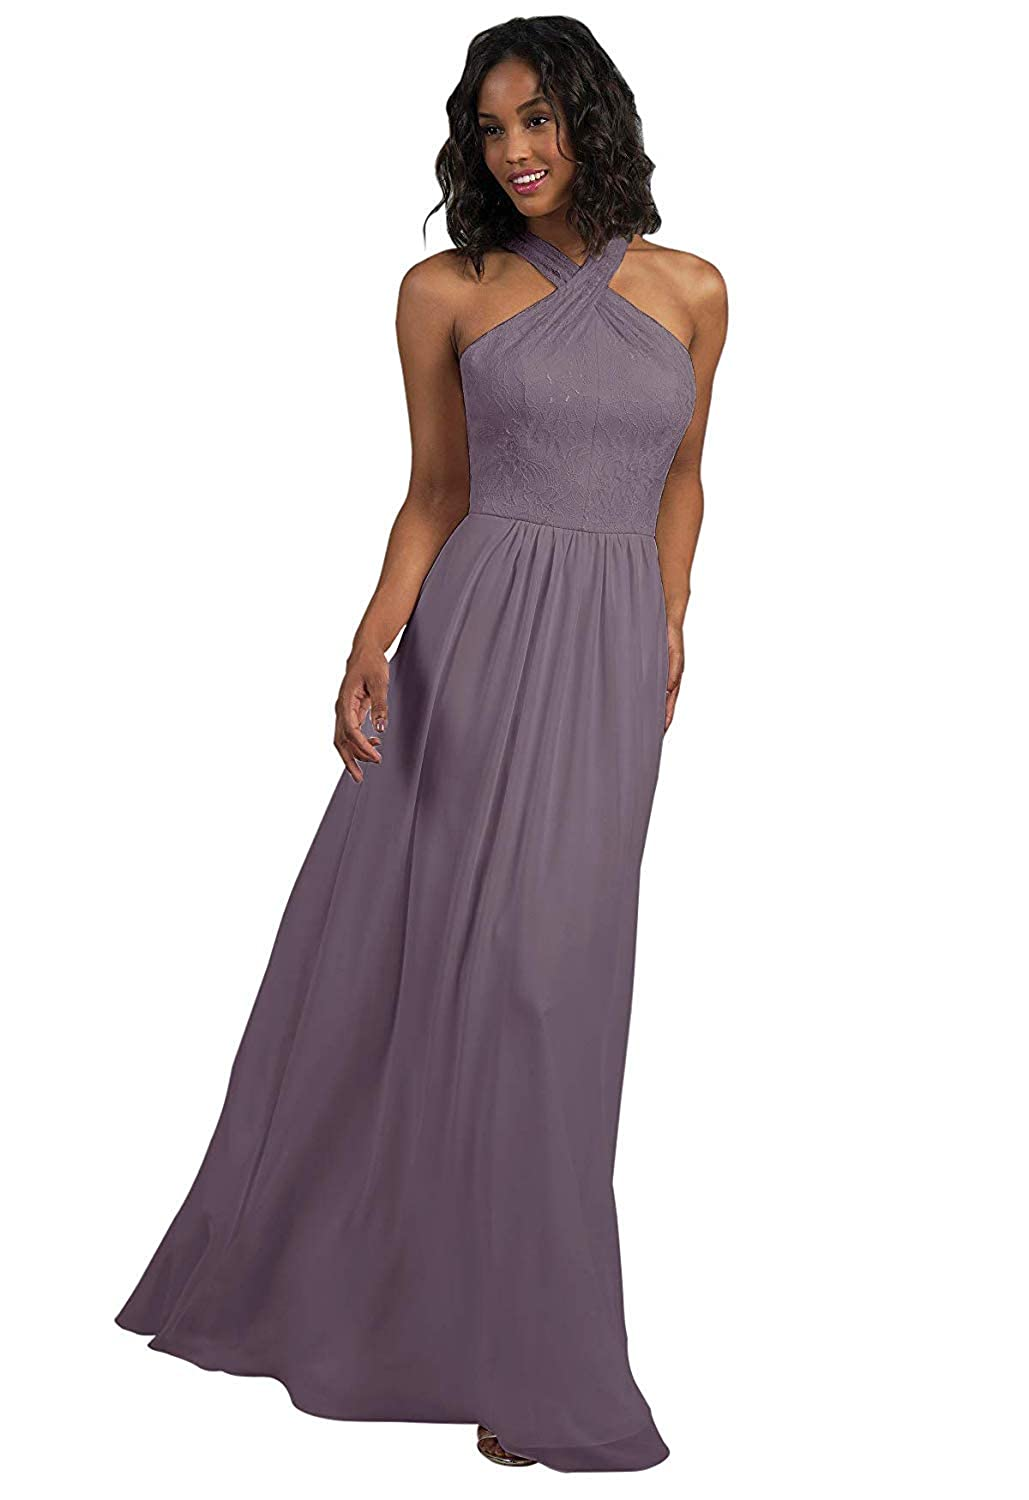 Wisteria RTTUTED Lace Long Bridesmaid Dresses with CrissCross Neckline Prom Evening Gown